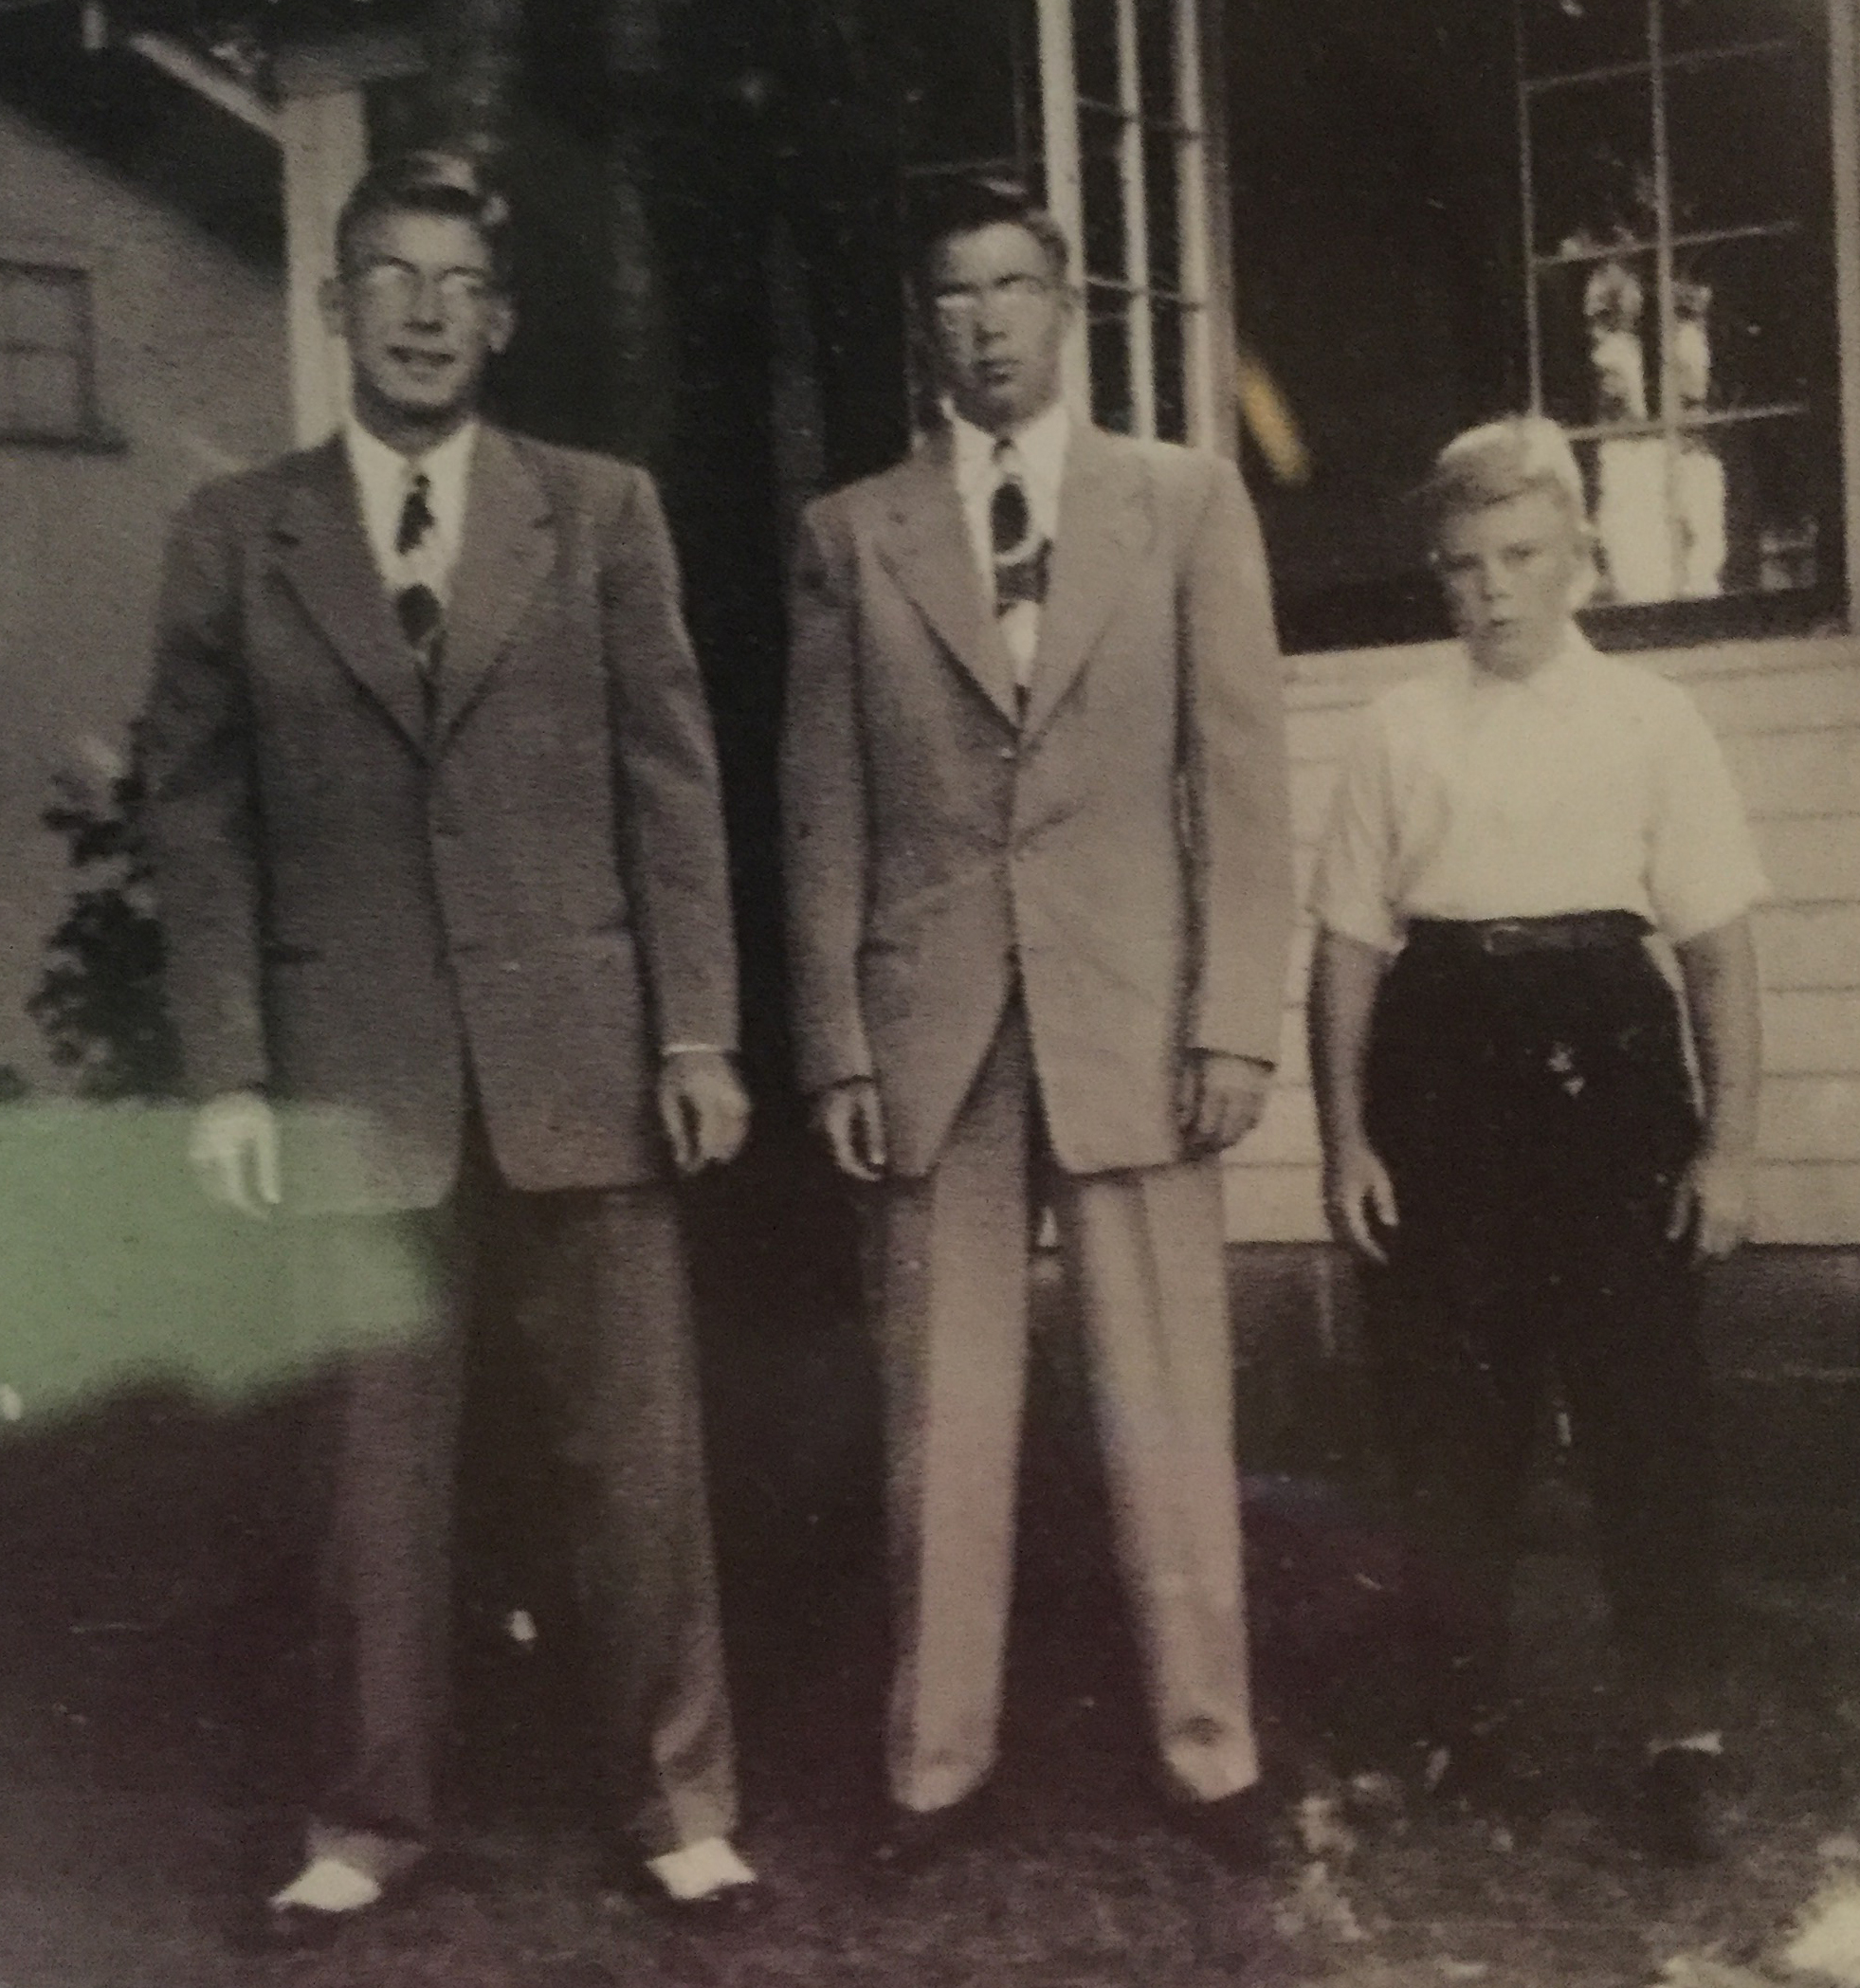 """David D. Dowd, Jr., John C. """"Jack"""" Dowd, and James F. Dowd. Family snapshot taken by David D. Dowd, Sr. or Martha Combrink Dowd, late 1940s. Shady Shores Resort, Dowagiac, Michigan. Photo courtesy of Deb Clinebell (née Dowd,daughter to Jim and Betty)."""